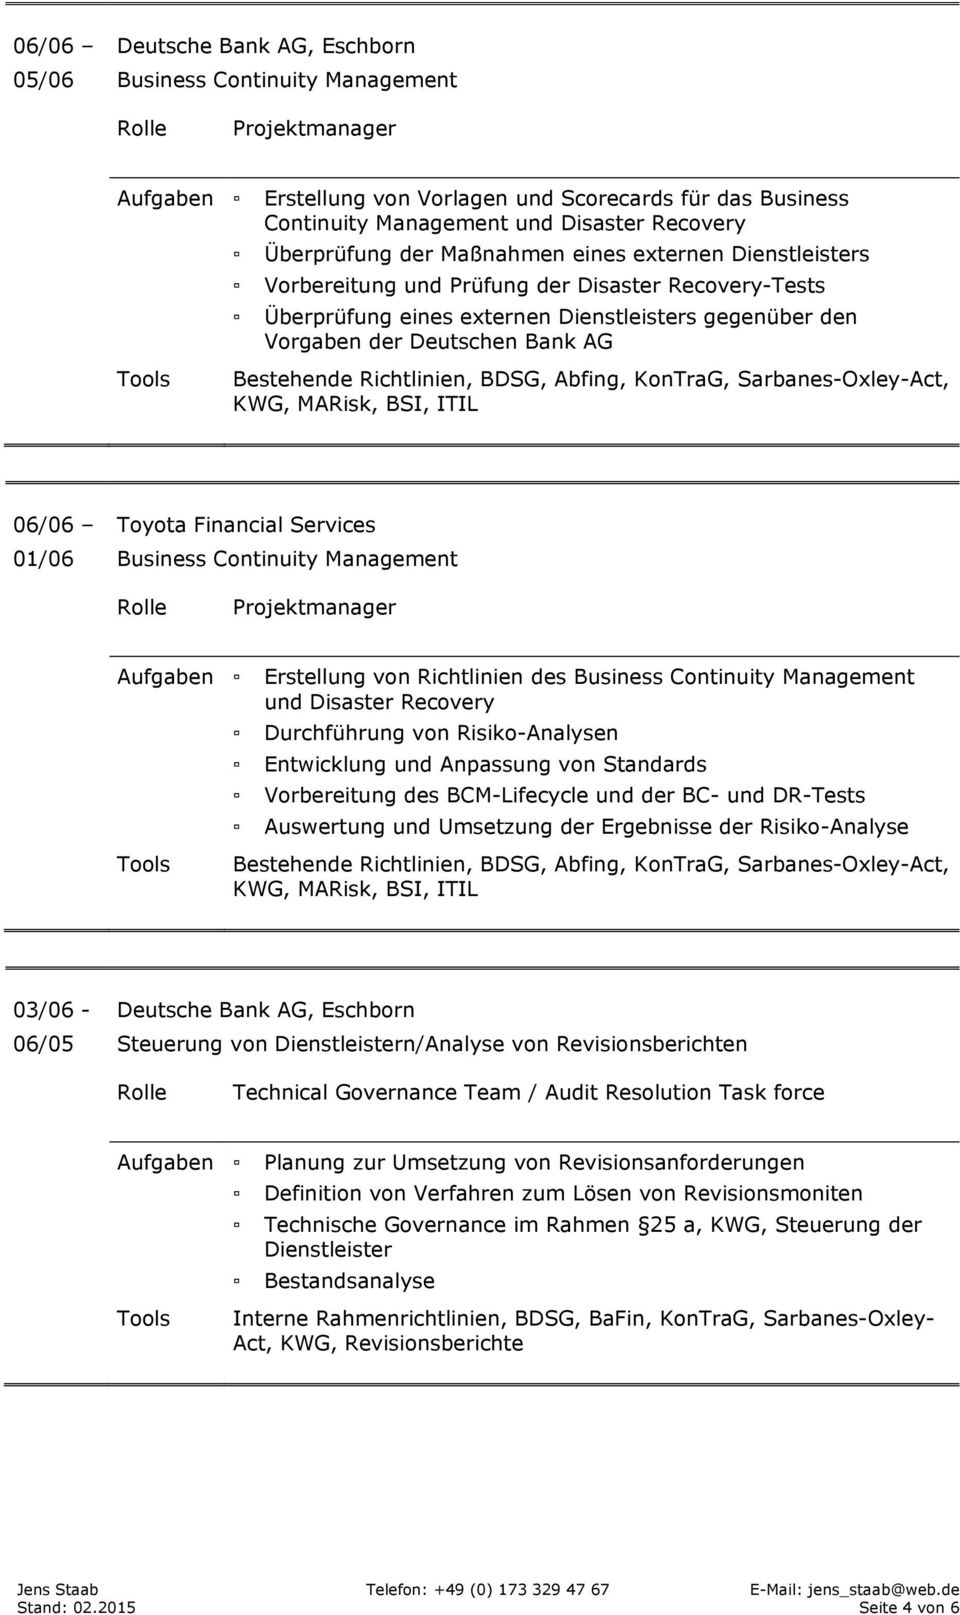 KonTraG, Sarbanes-Oxley-Act, KWG, MARisk, BSI, ITIL 06/06 01/06 Toyota Financial Services Business Continuity Management Aufgaben Erstellung von Richtlinien des Business Continuity Management und